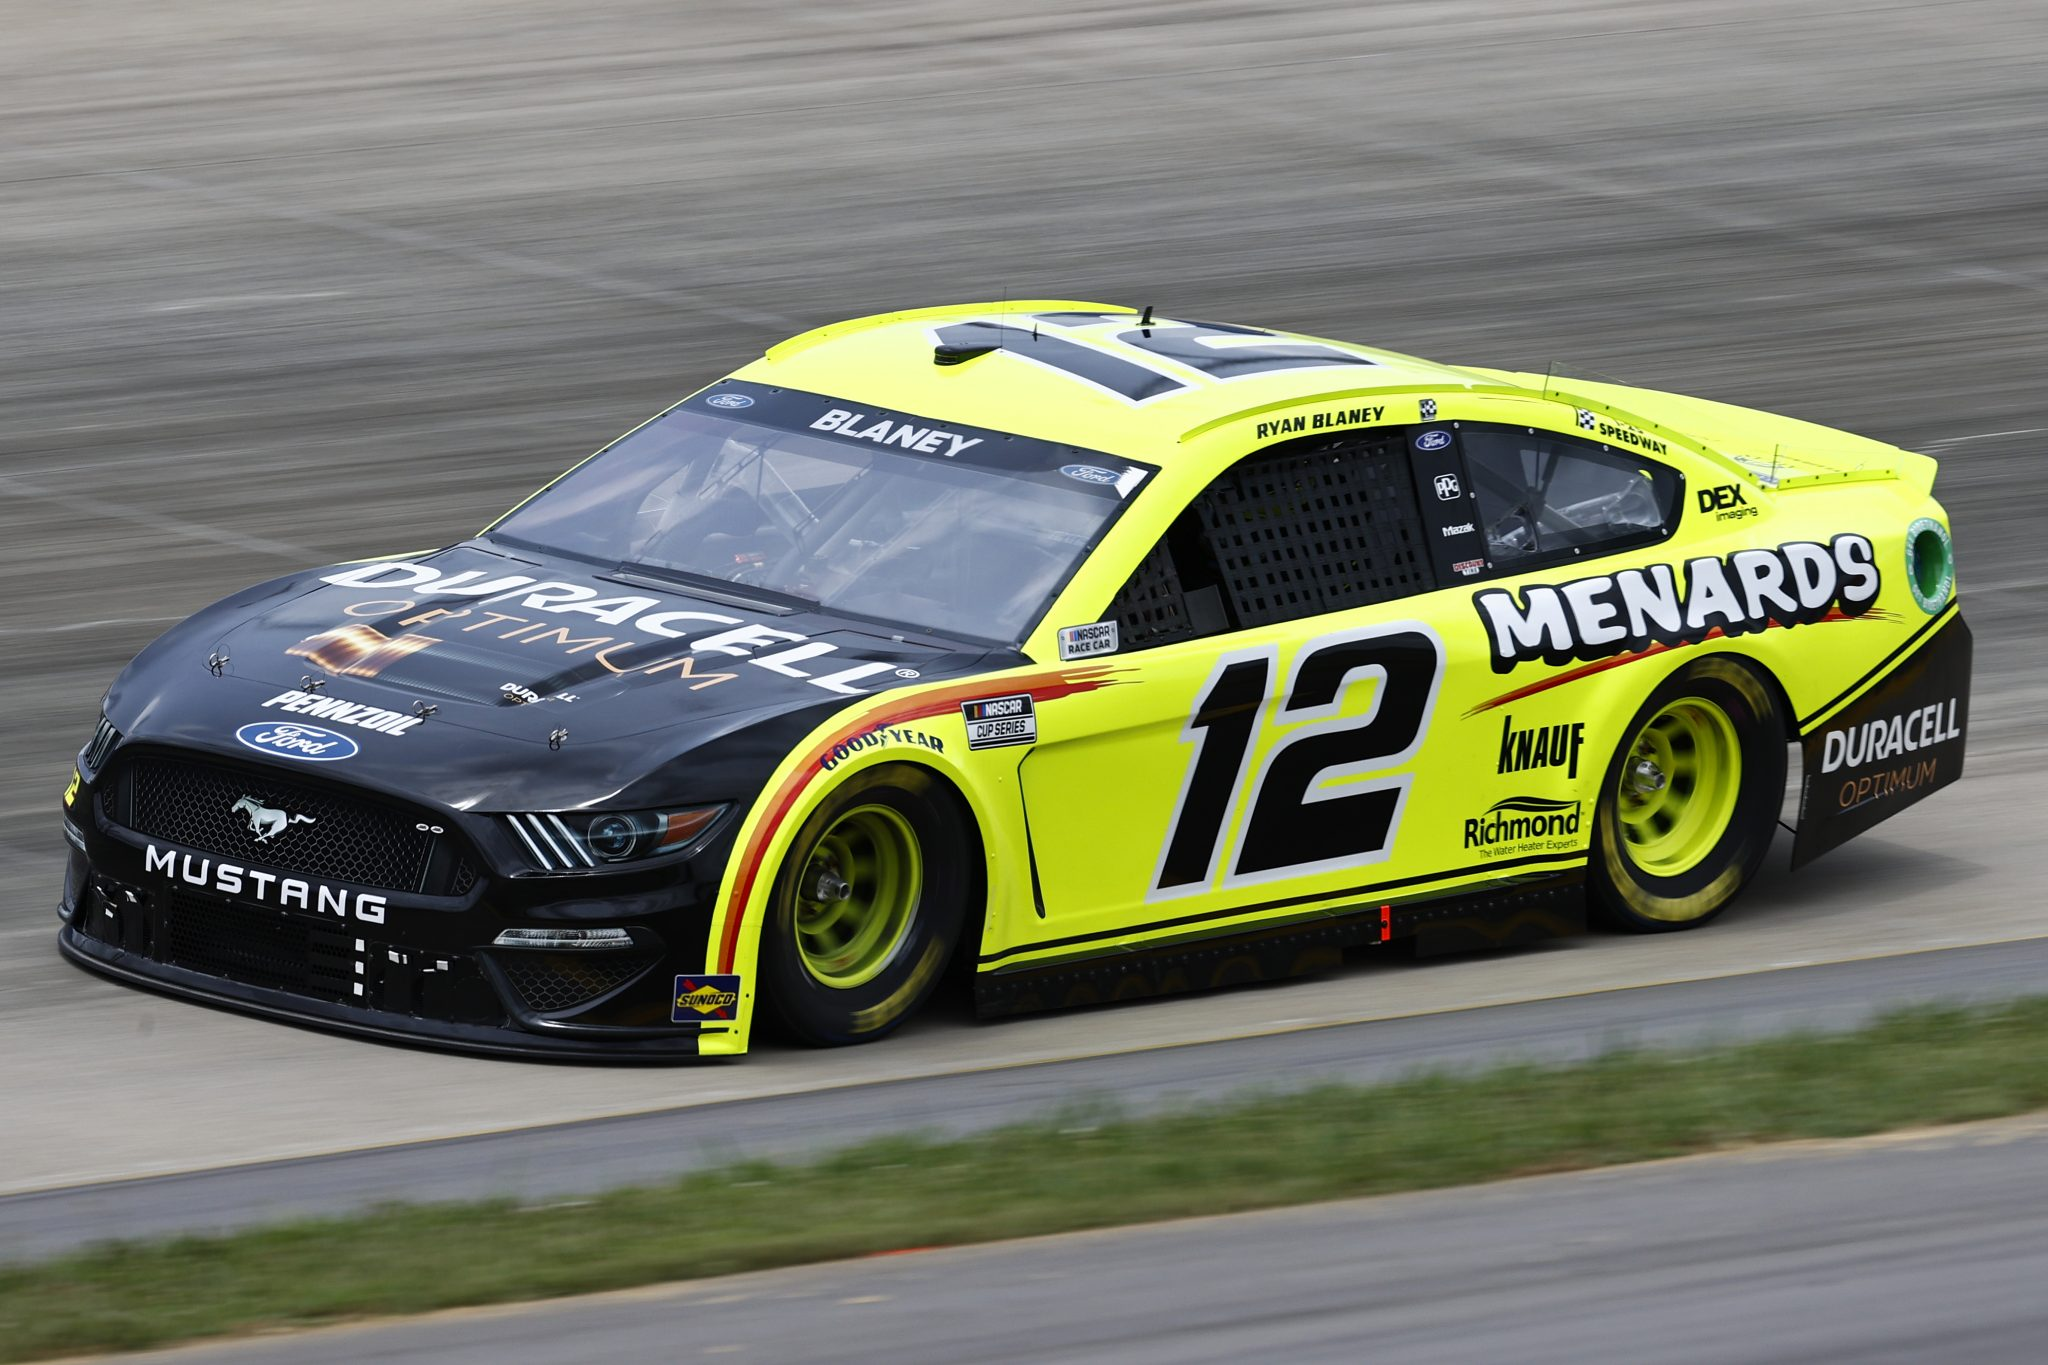 LEBANON, TENNESSEE - JUNE 19: Ryan Blaney, driver of the #12 Menards/Duracell Ford, drives during practice for the NASCAR Cup Series Ally 400 at Nashville Superspeedway on June 19, 2021 in Lebanon, Tennessee. (Photo by Jared C. Tilton/Getty Images)   Getty Images